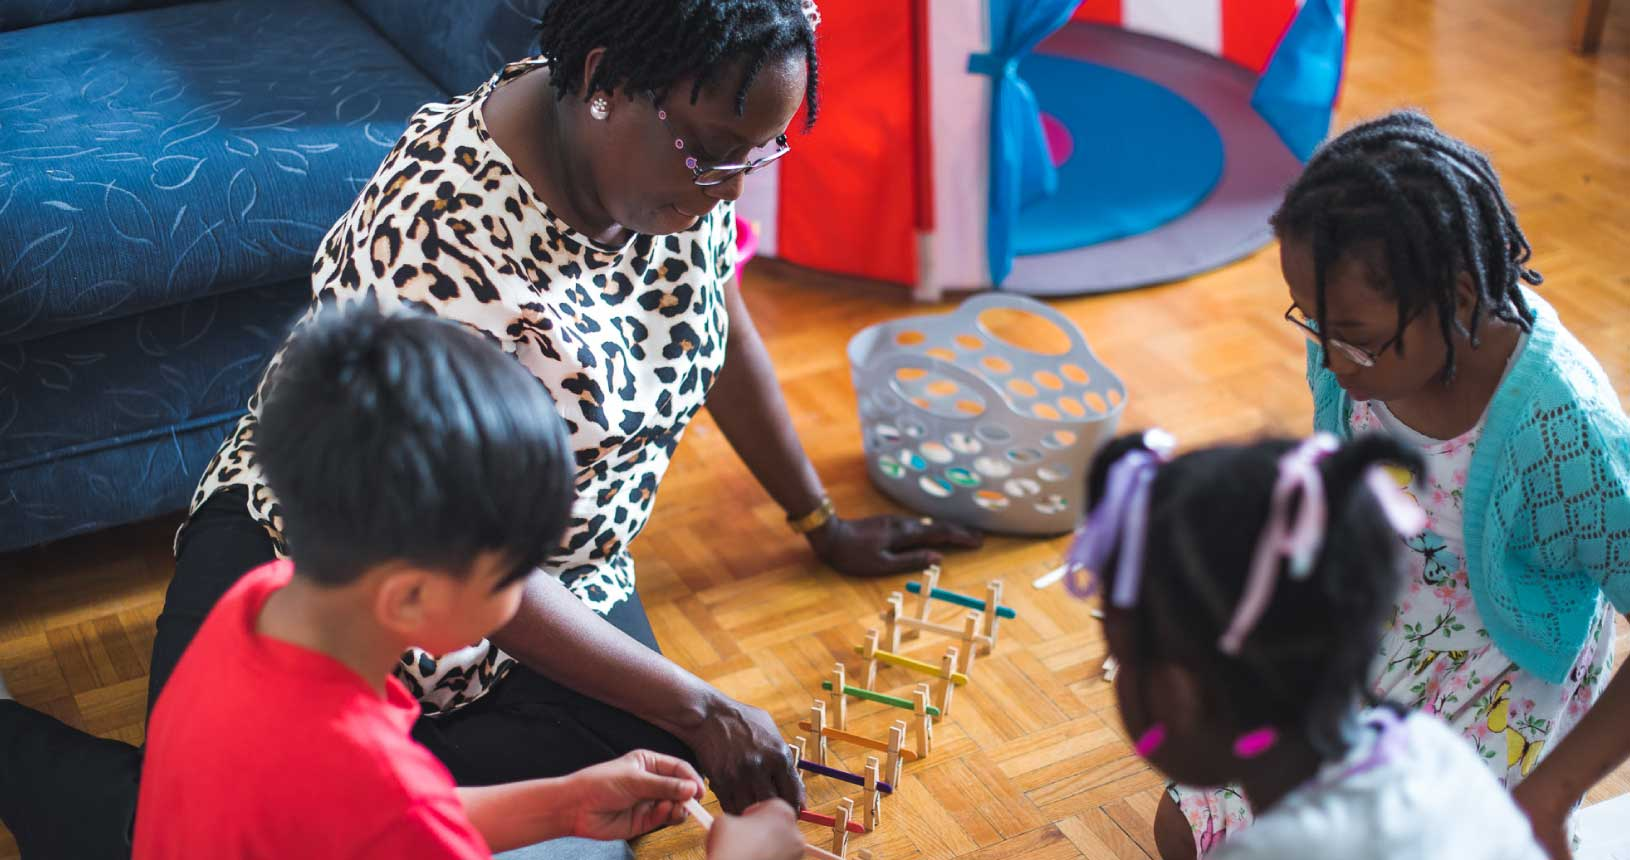 A woman and three children sit on the ground playing a game with popsicle sticks